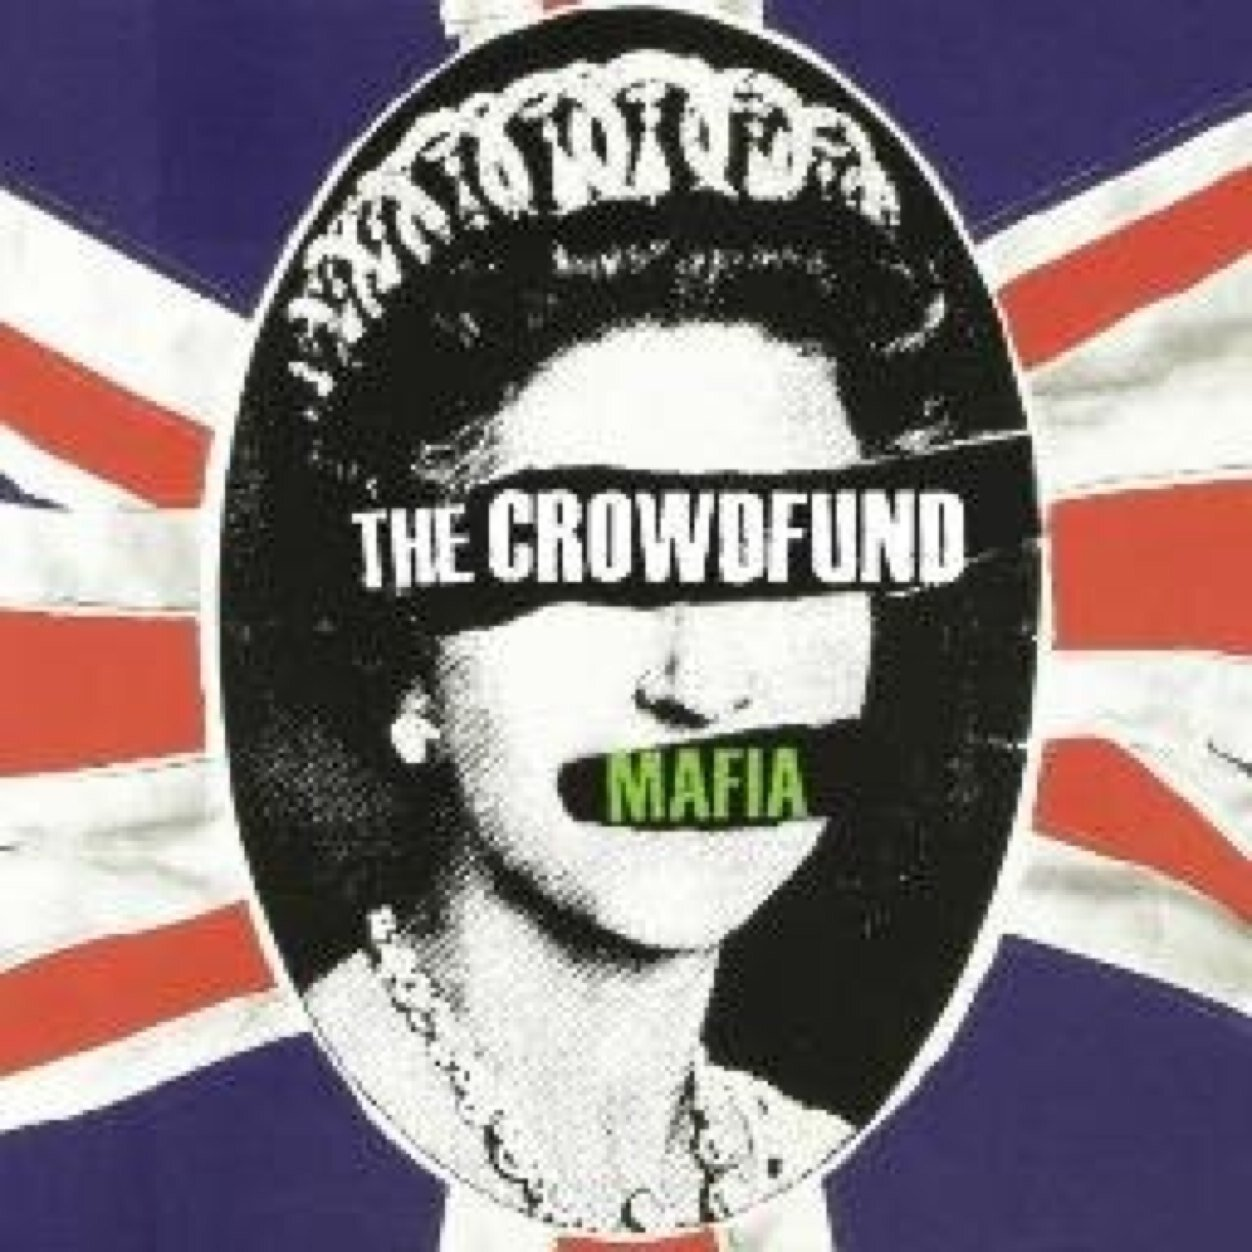 The Crowdfund Mafia